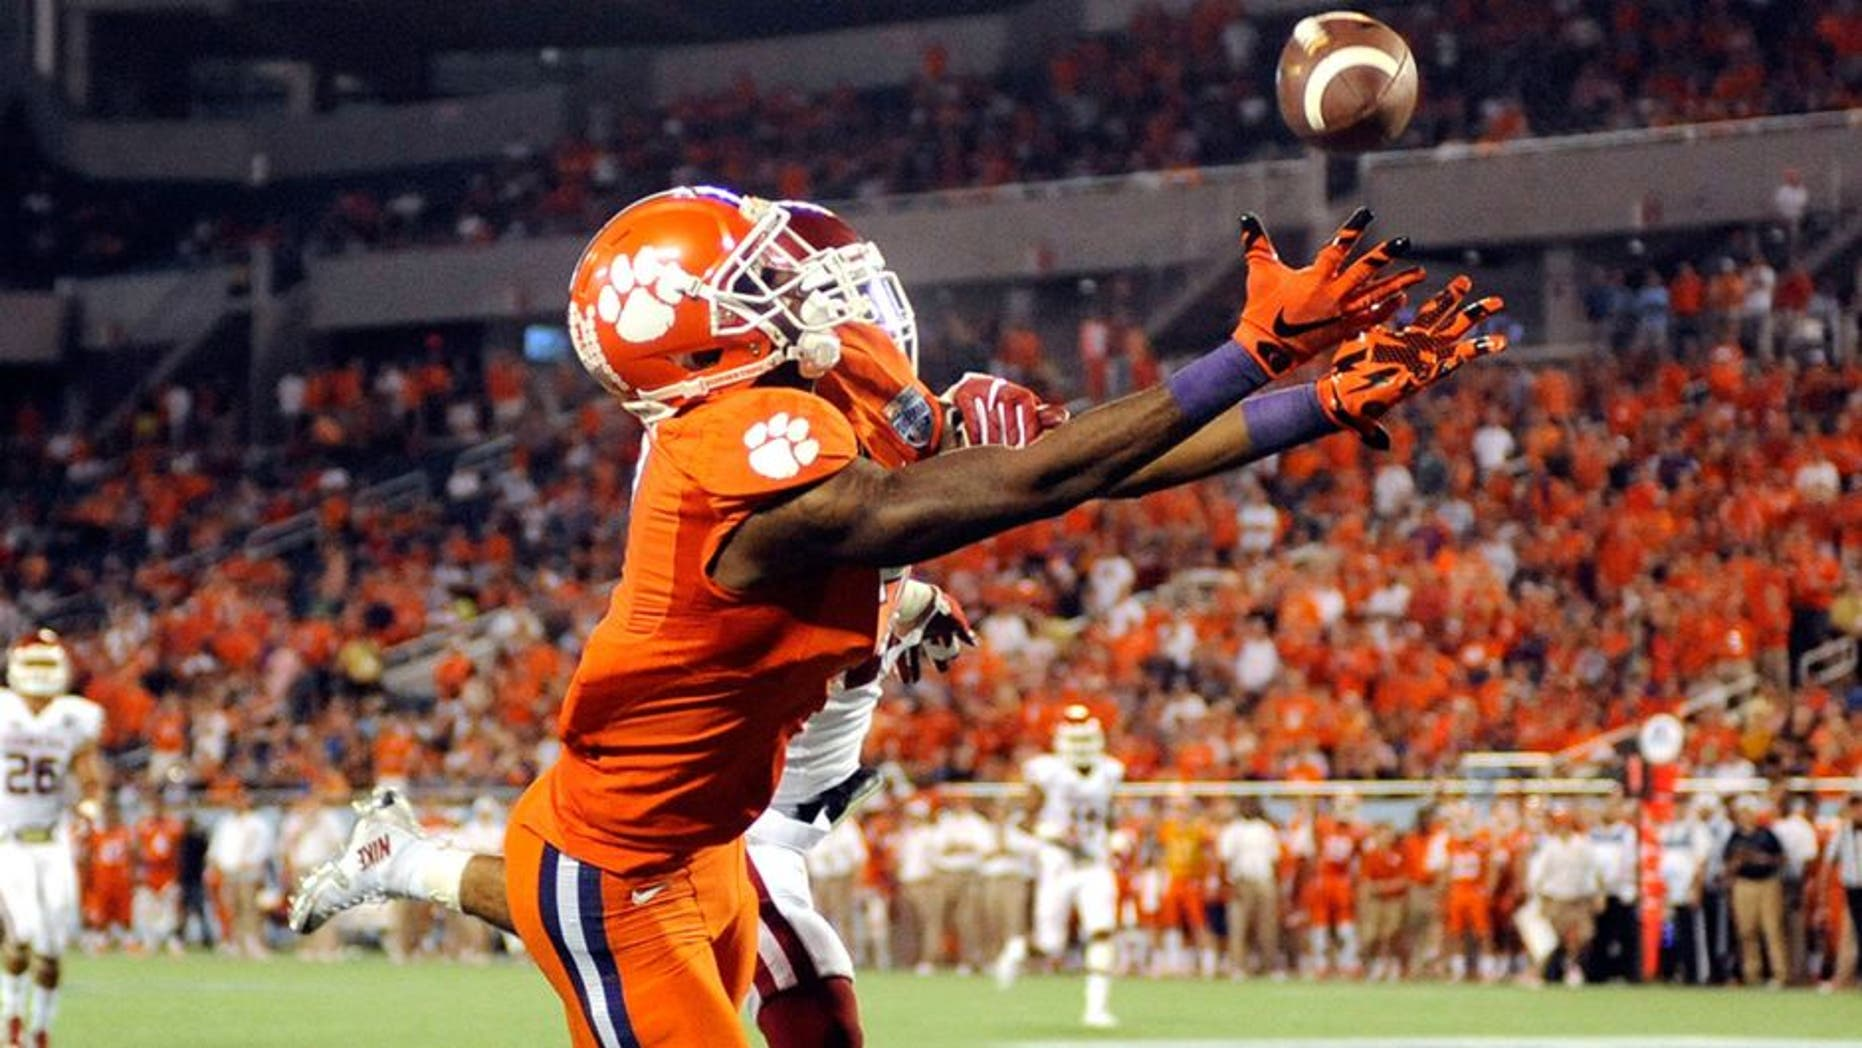 Dec 29, 2014; Orlando, FL, USA; Clemson Tigers wide receiver Mike Williams (7) is unable to catch a pass as the Clemson Tigers beat the Oklahoma Sooners in the 2014 Russell Athletic Bowl at Florida Citrus Bowl. Mandatory Credit: David Manning-USA TODAY Sports